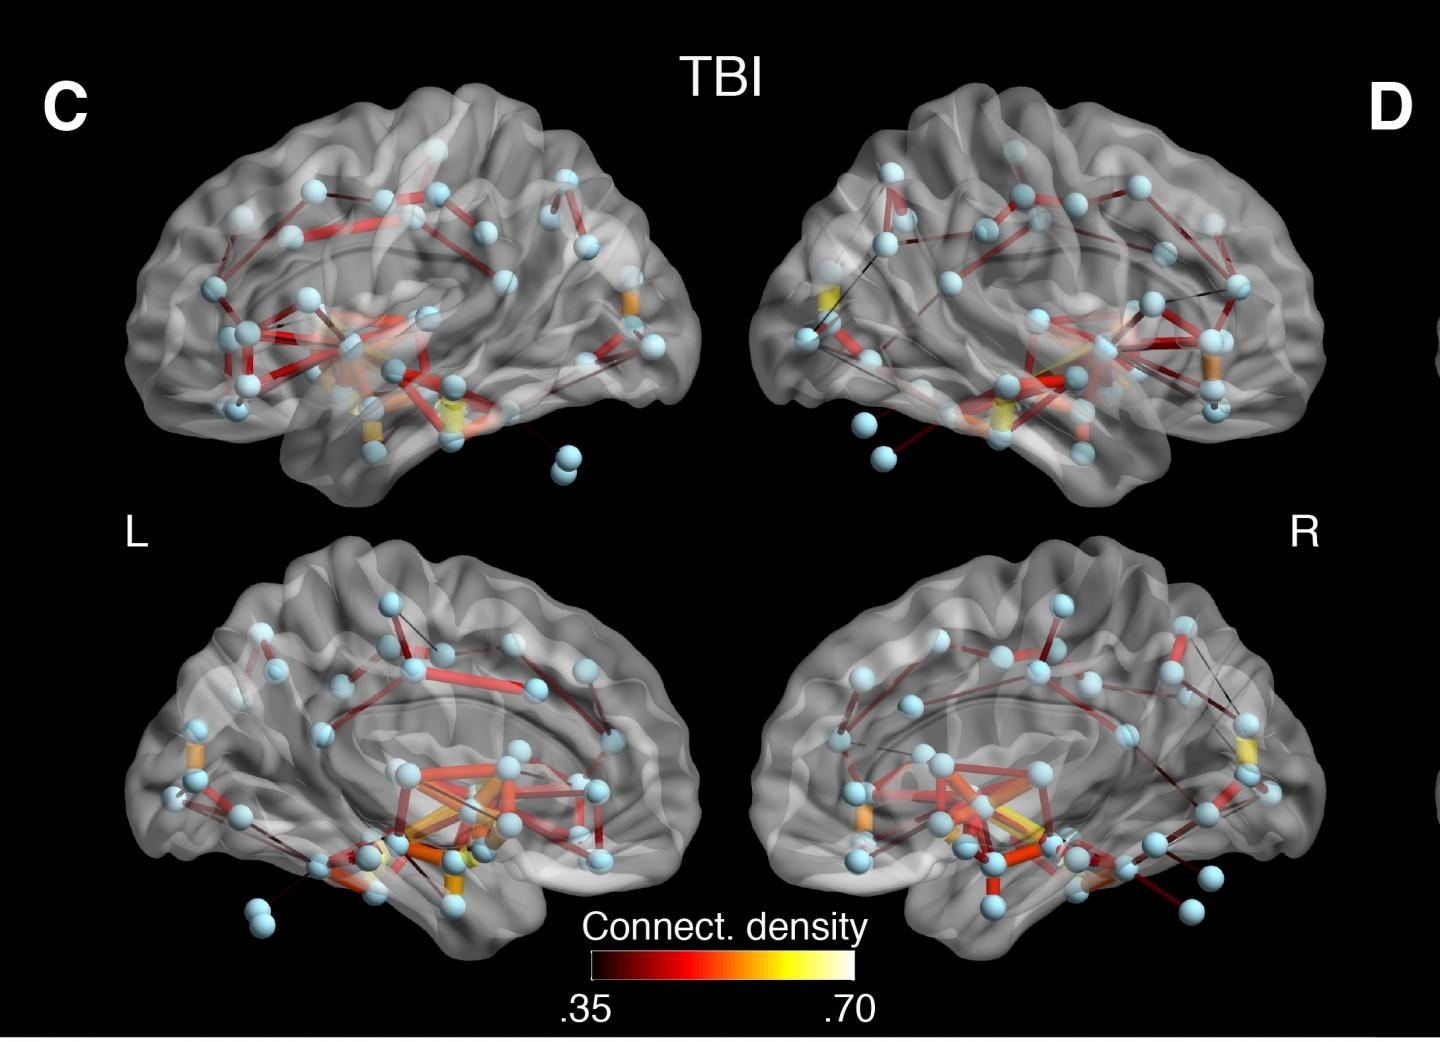 Researchers found that white matter connections between several brain regions of concussed individuals showed abnormal connectivity that might reflect both degeneration and the brain's method of compensating for damage. (Source: Sebastien Tremblay)